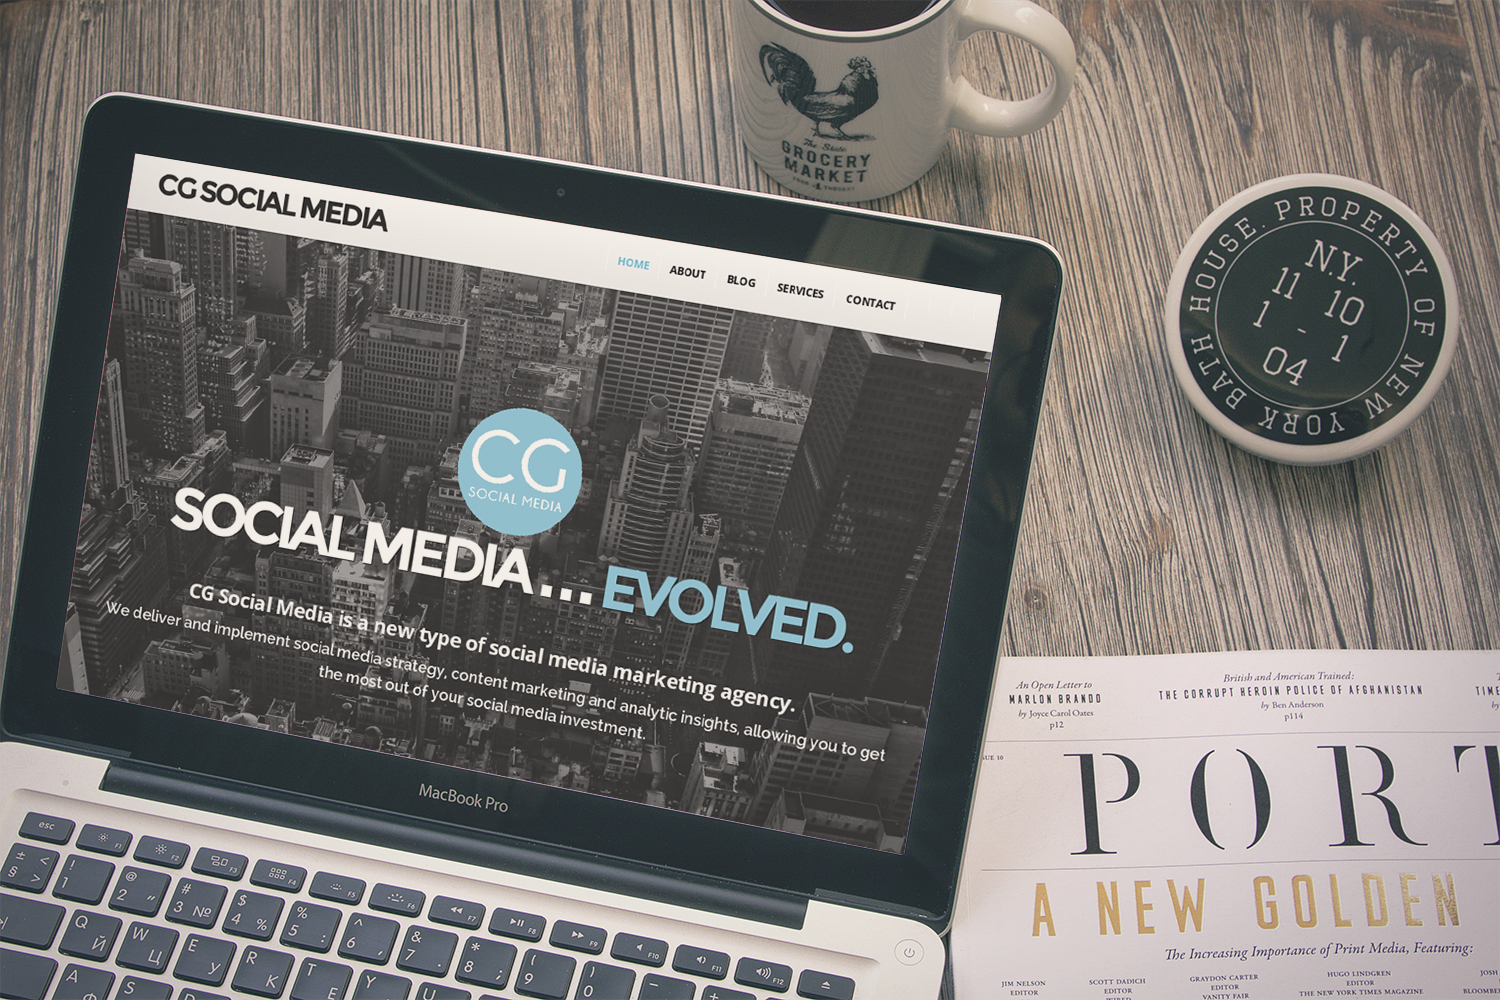 About | CG Social Media, LLC